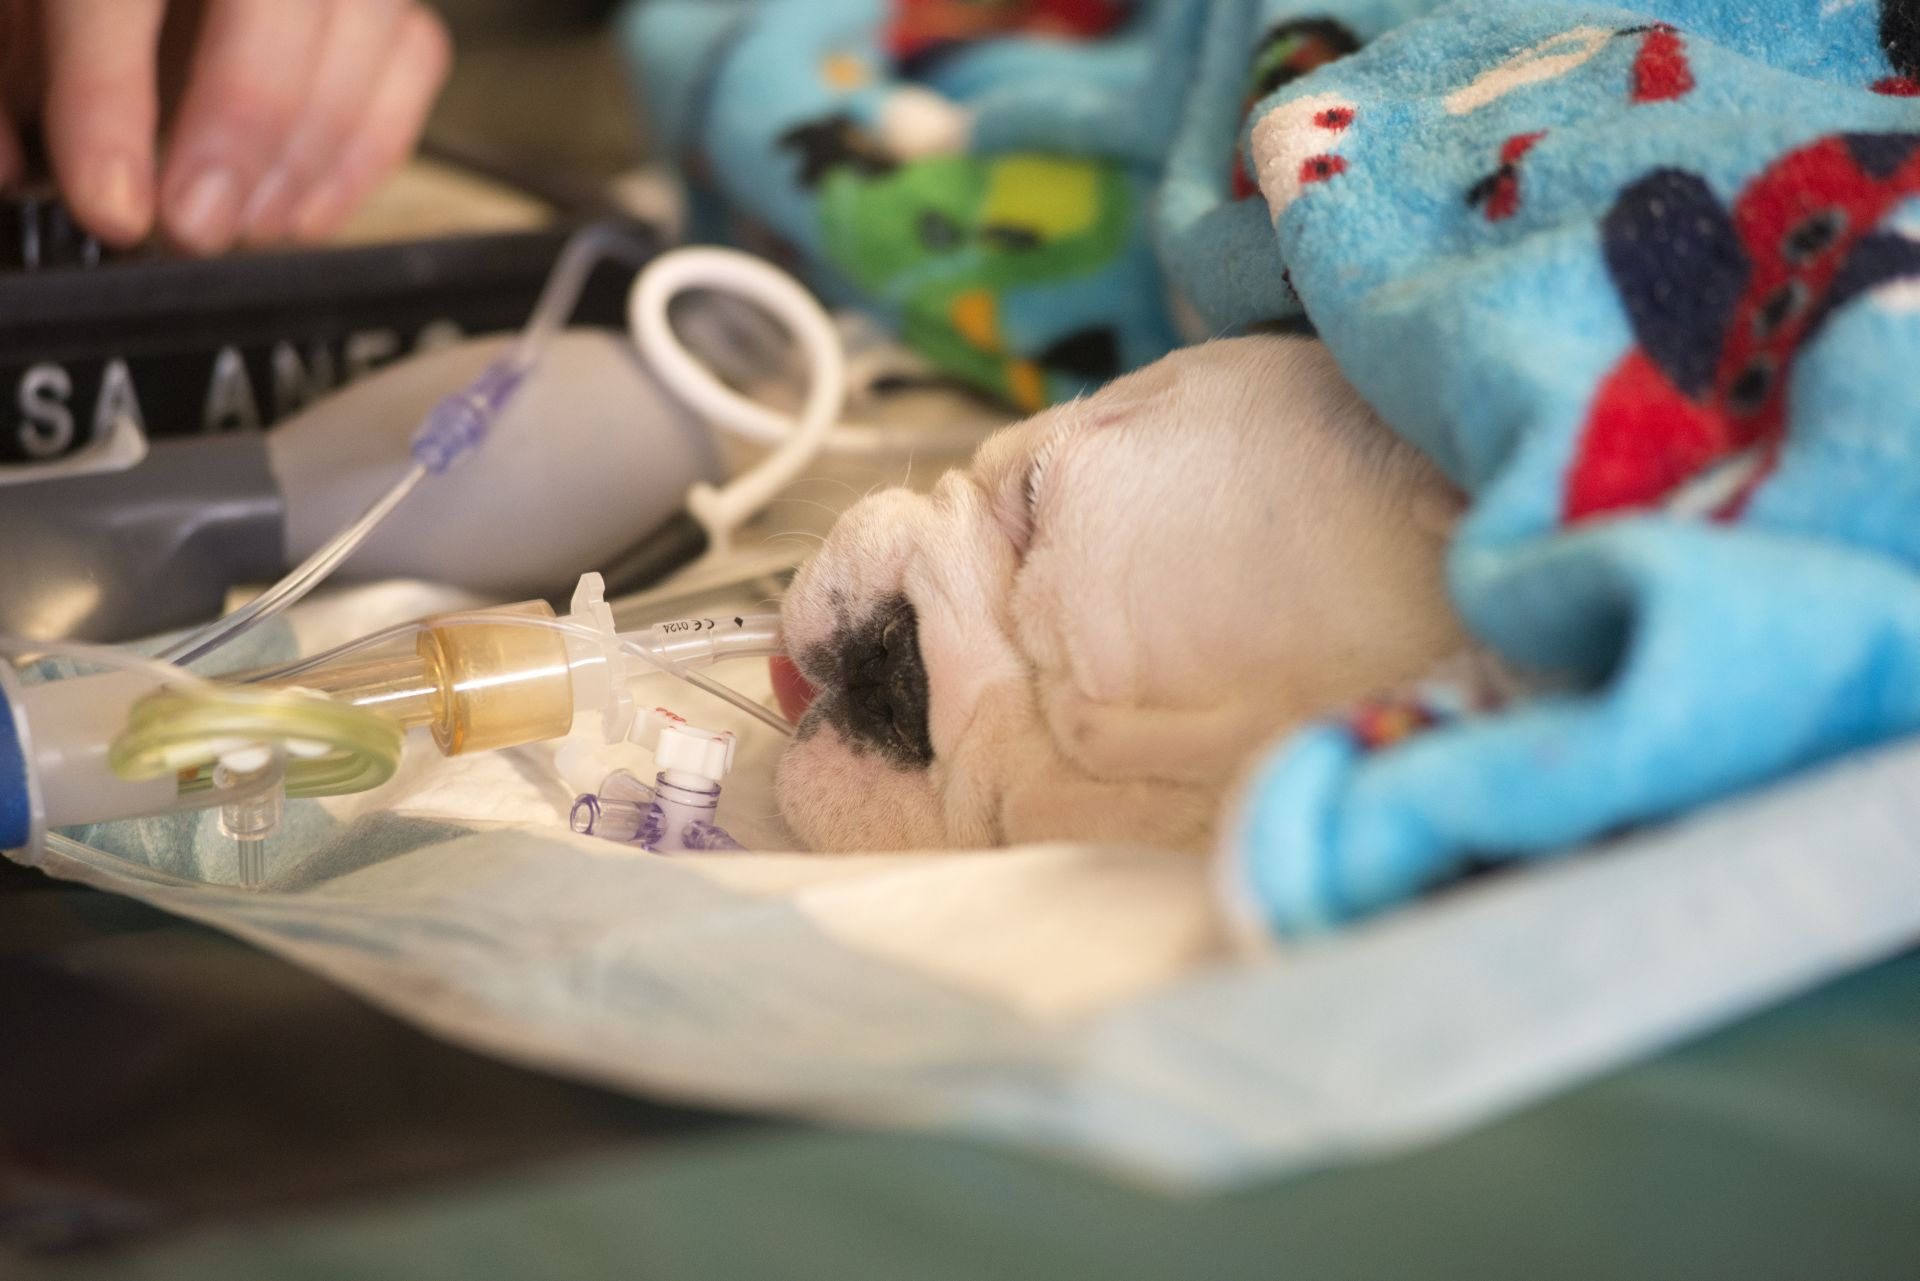 Stem Cell Treatment for Spina Bifida Helps Dogs and Children